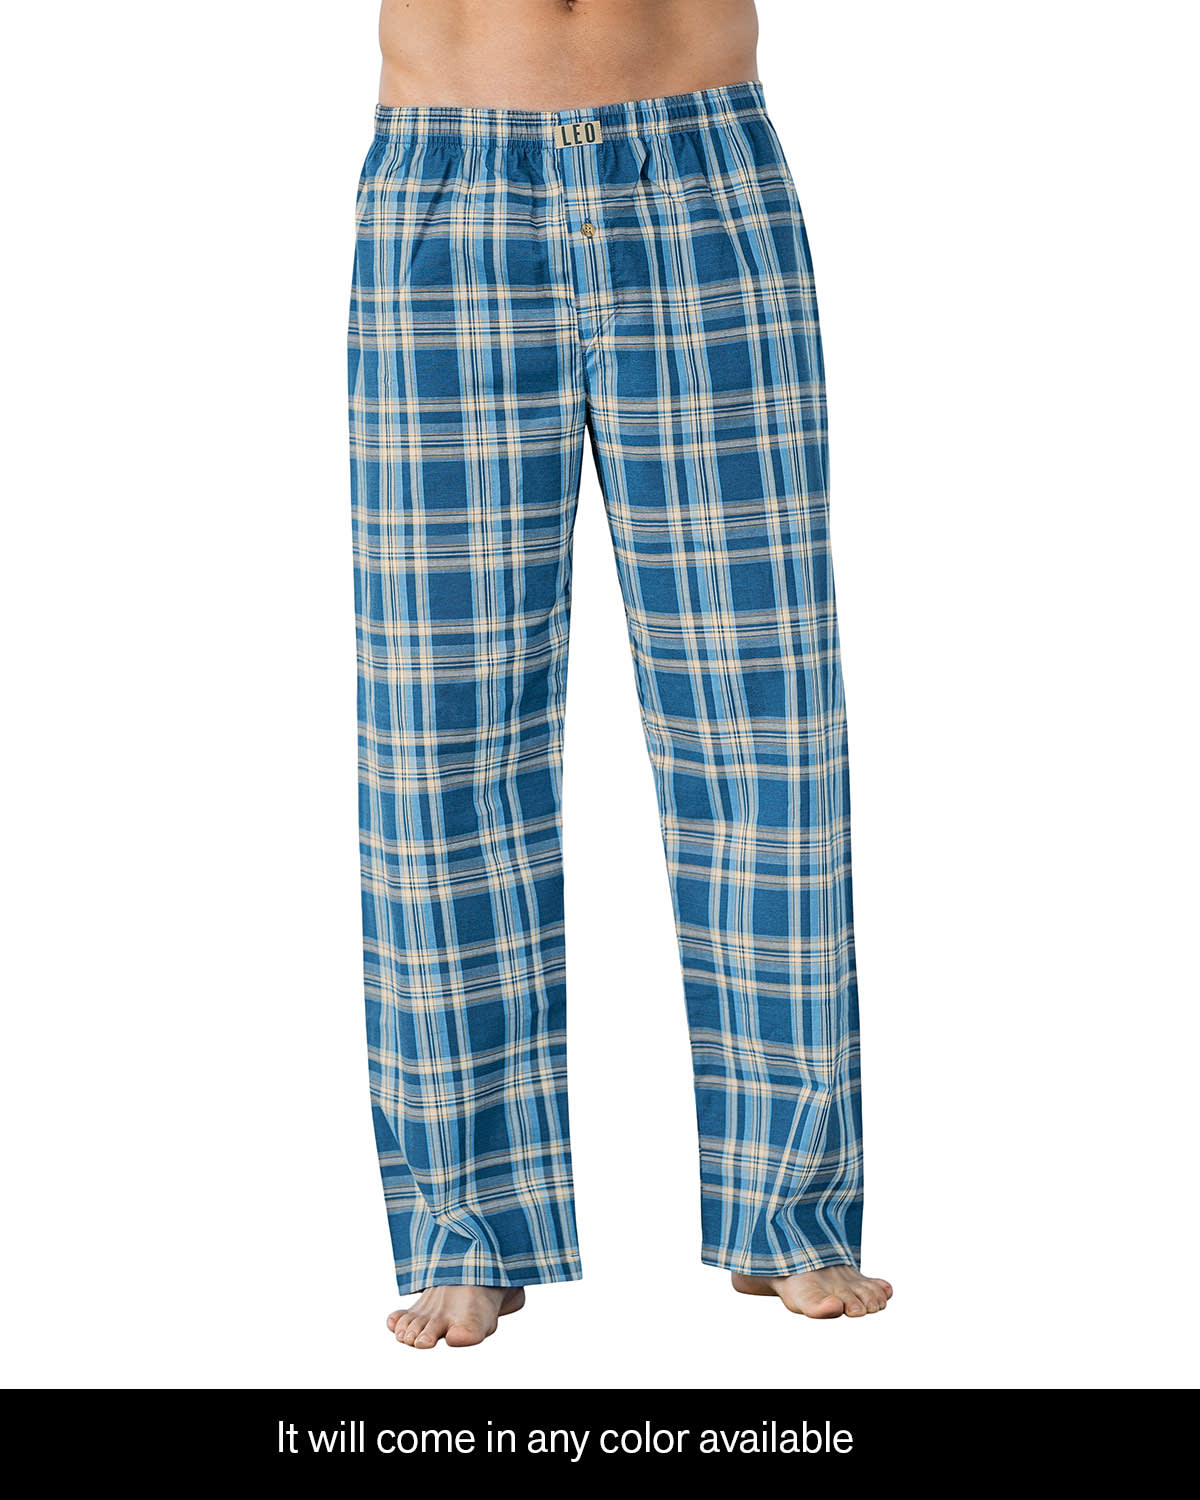 Men's Lounging Pant - Pattern may Vary According to Availability